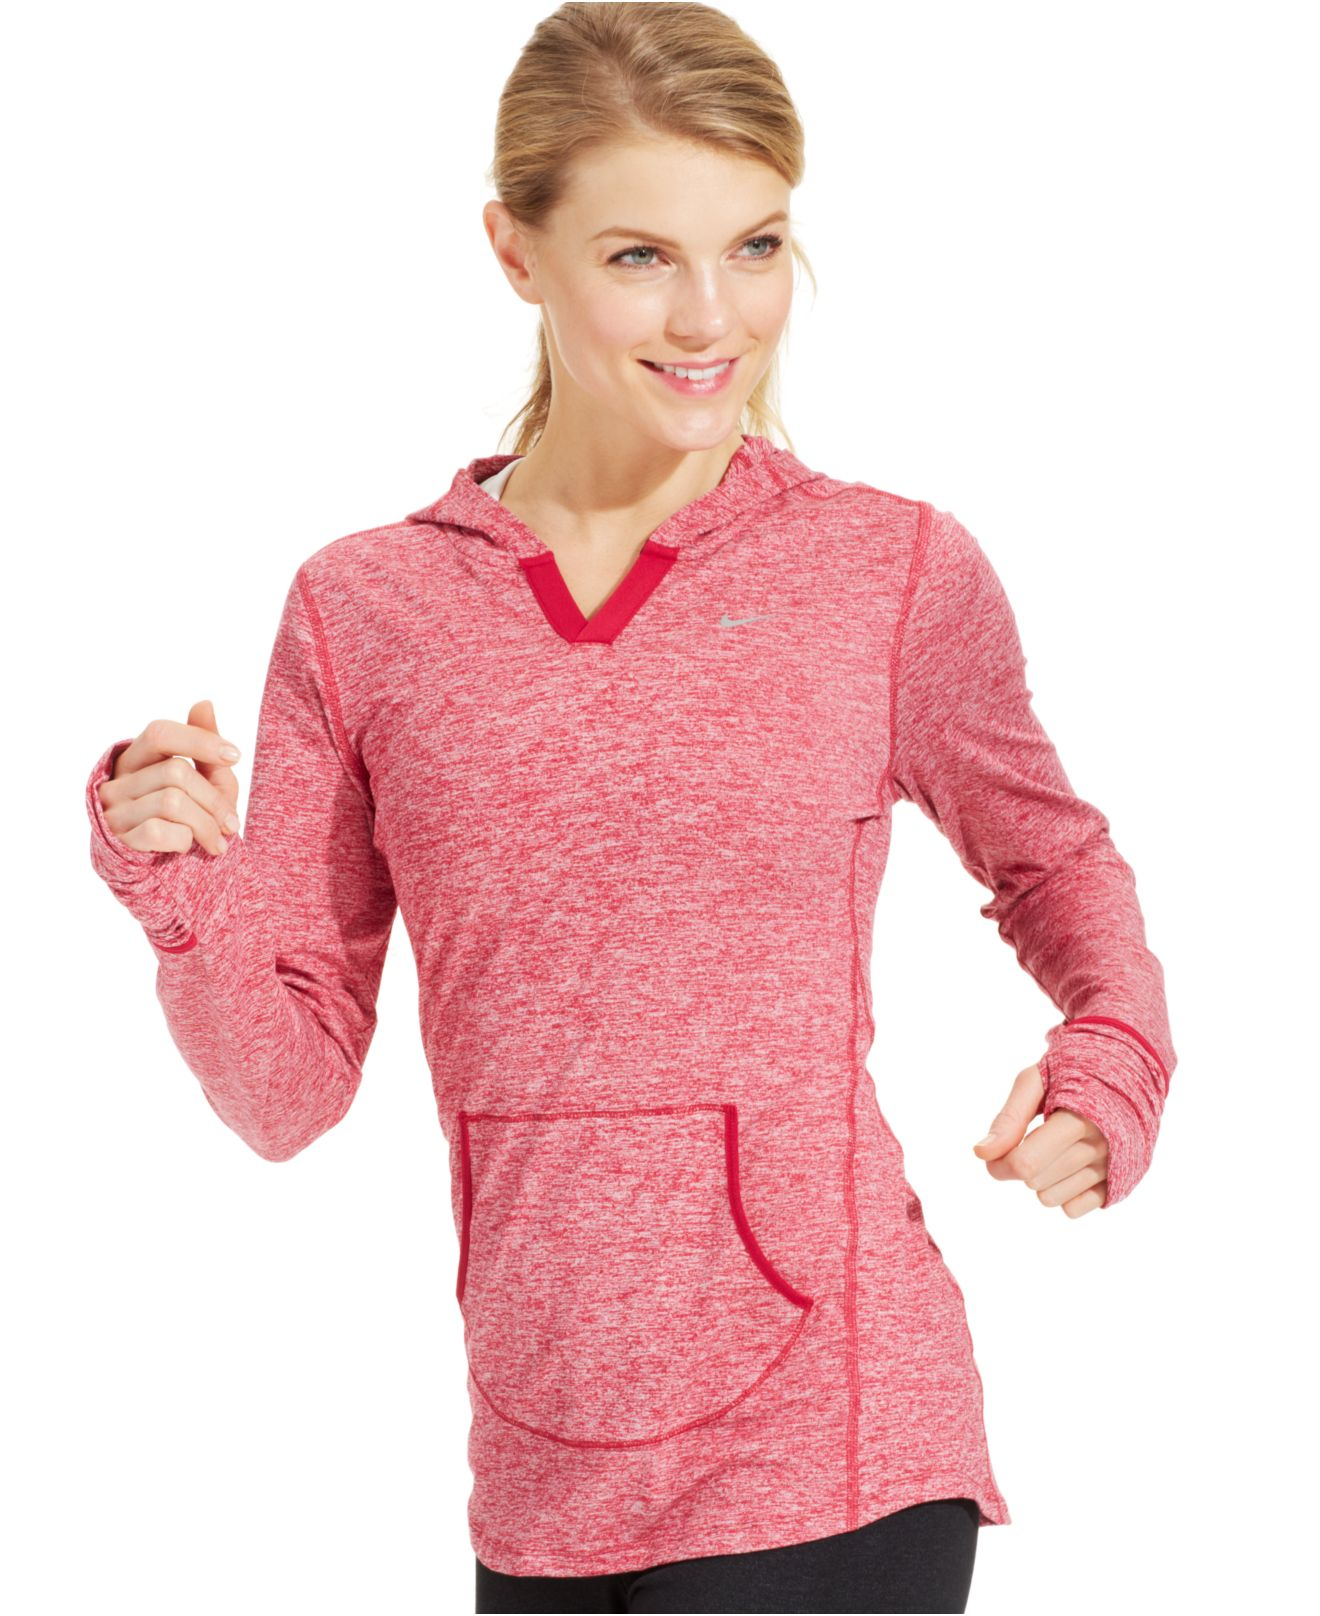 nike element dri fit hooded pullover in pink lyst. Black Bedroom Furniture Sets. Home Design Ideas